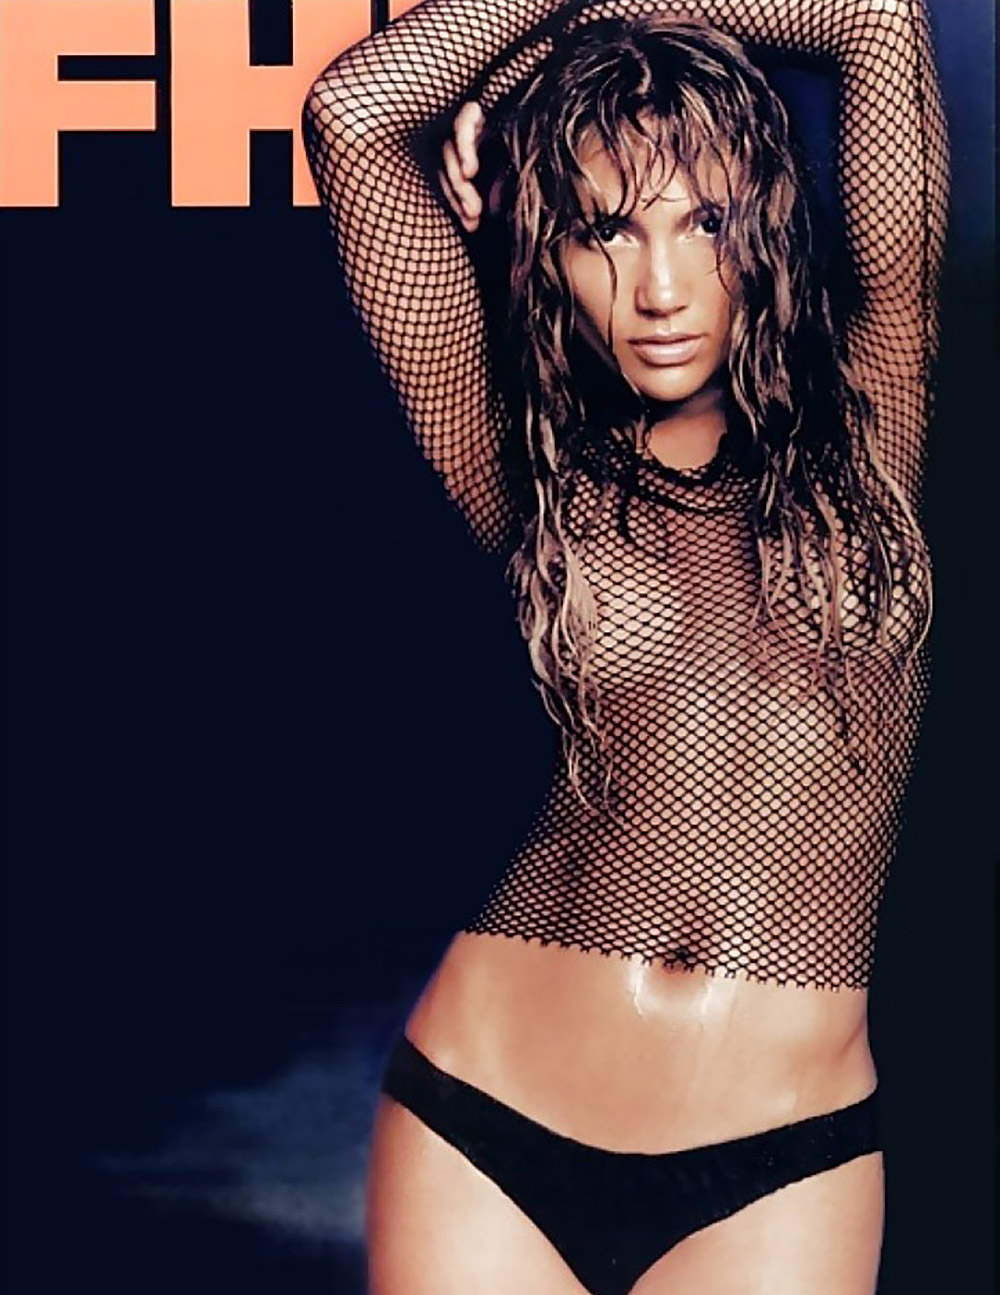 Jennifer lopez poses completely nude on her new album cover